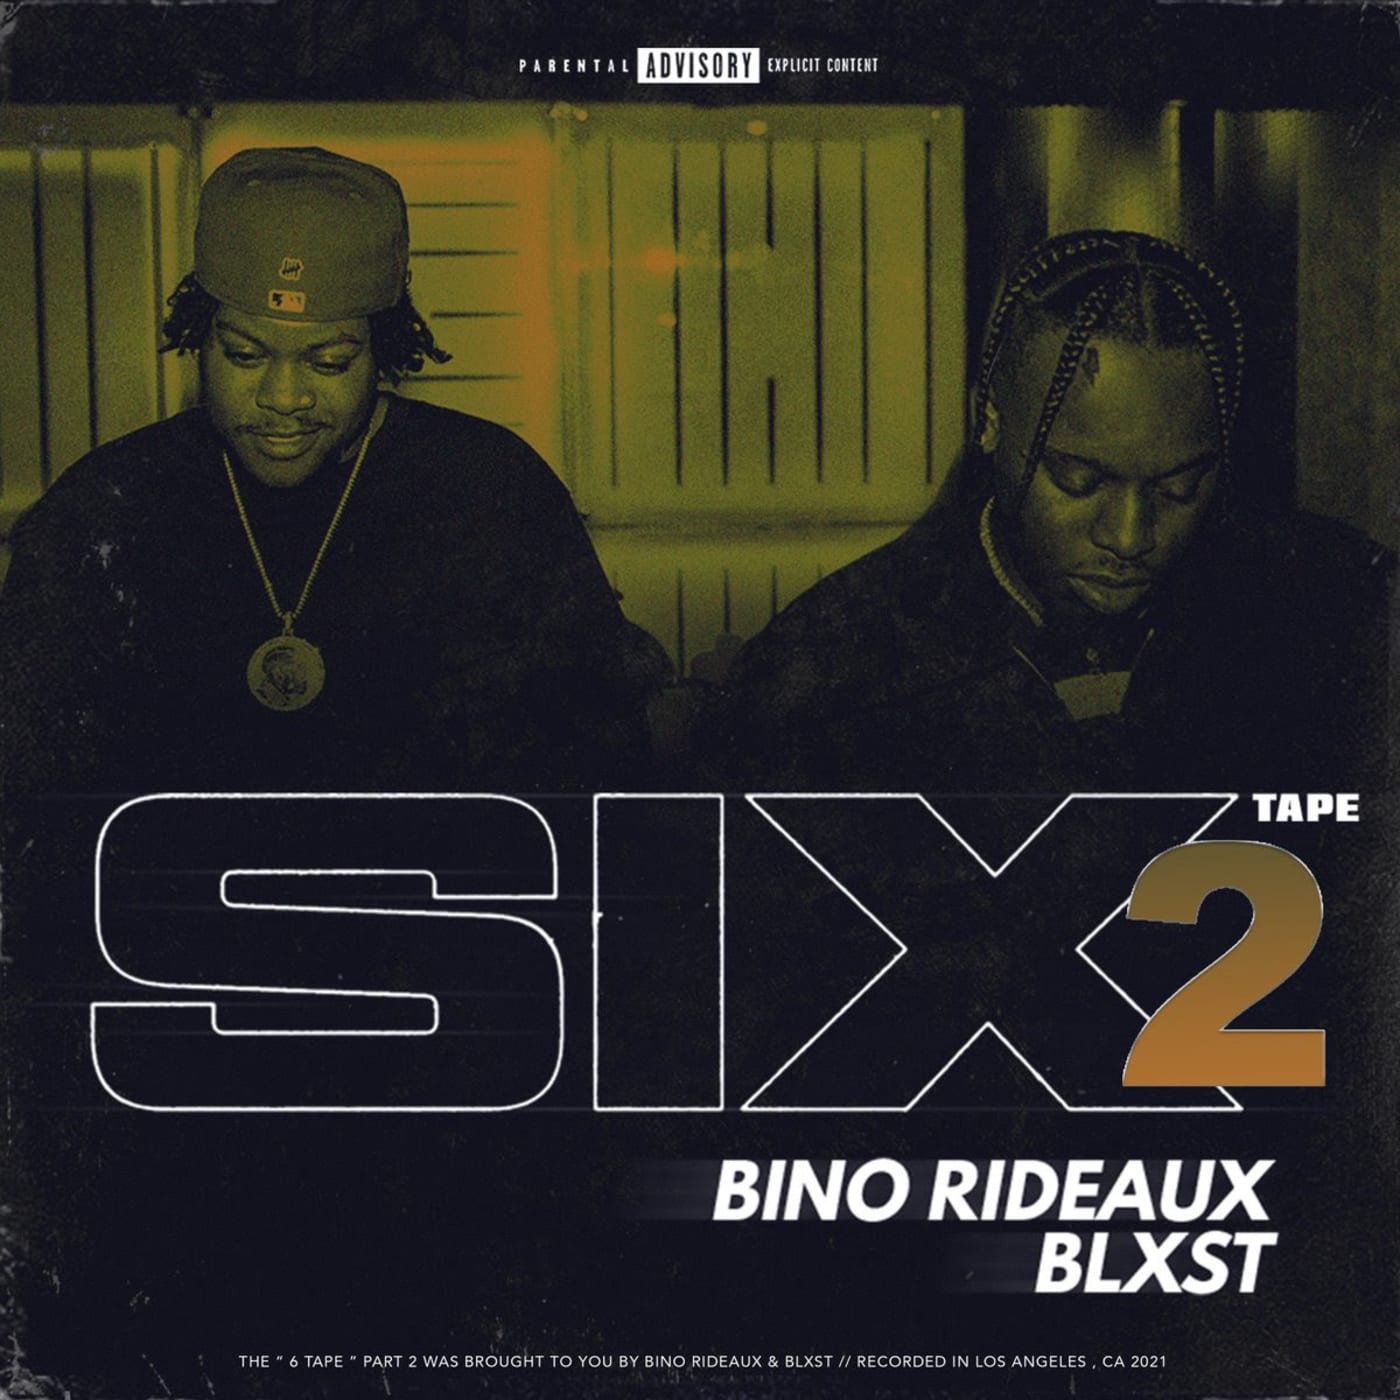 Blxst and Bino Rideaux